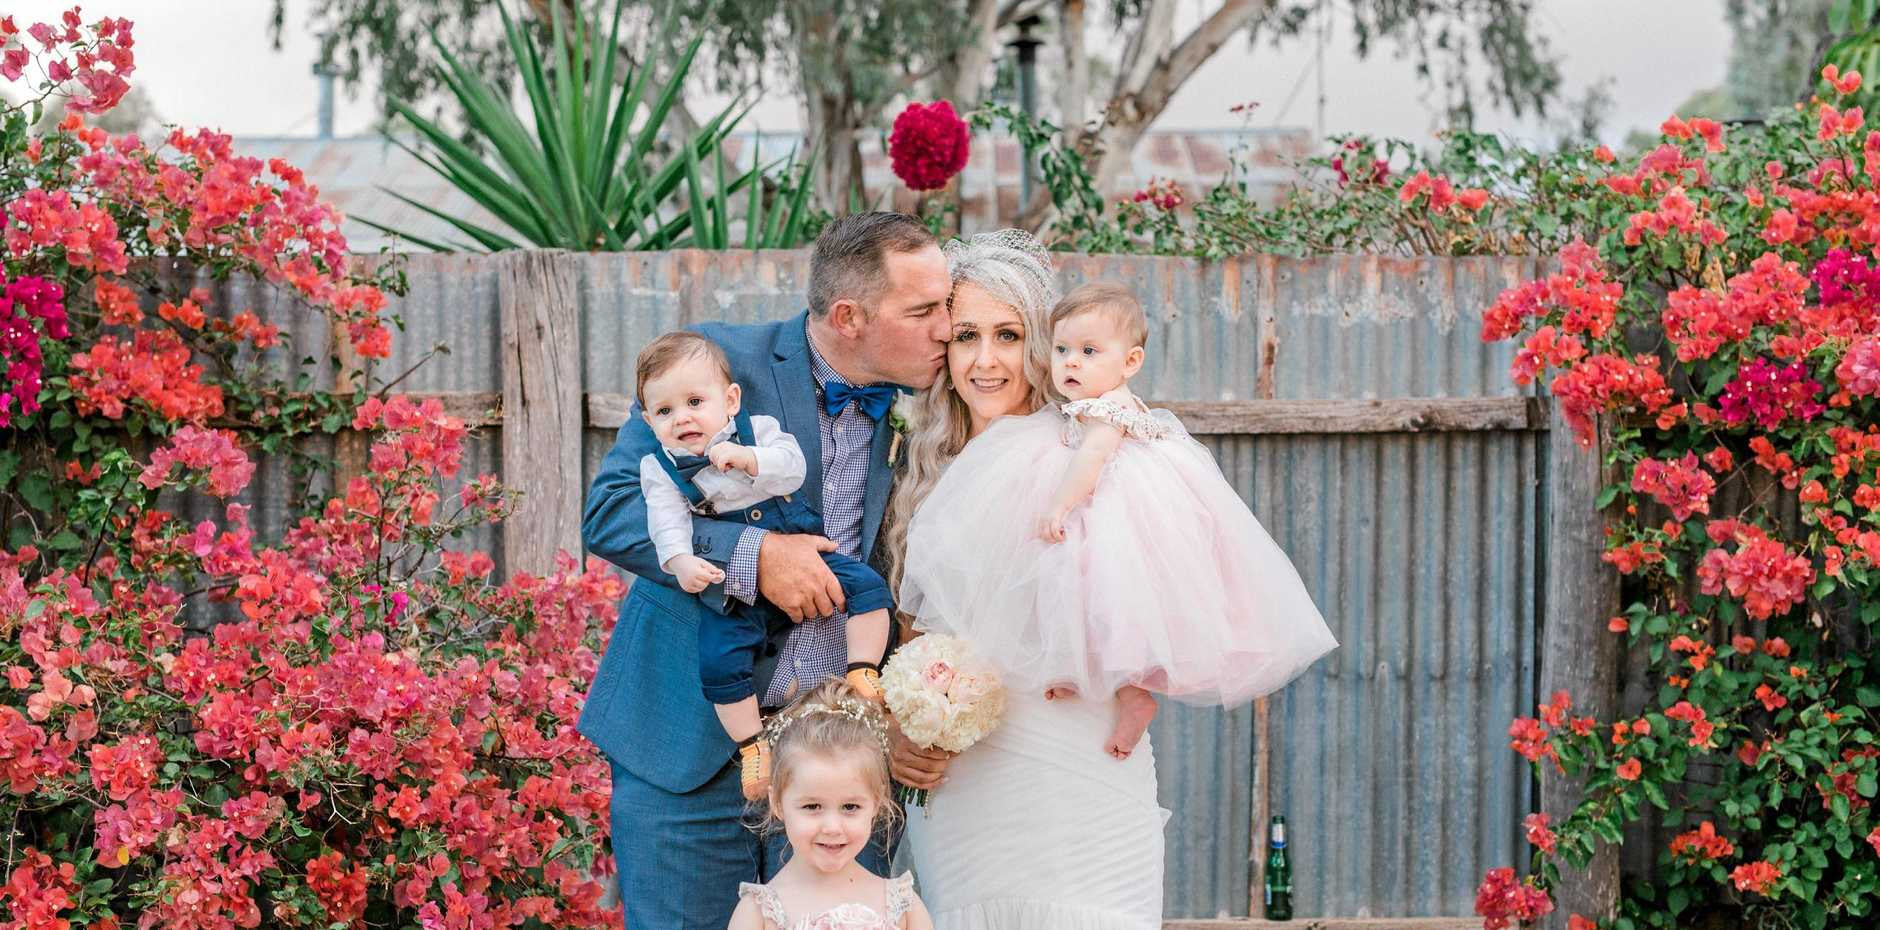 HAPPY FAMILY: Bek and her husband Nathan with their children Greta, Theo and Lily on their wedding day in March.